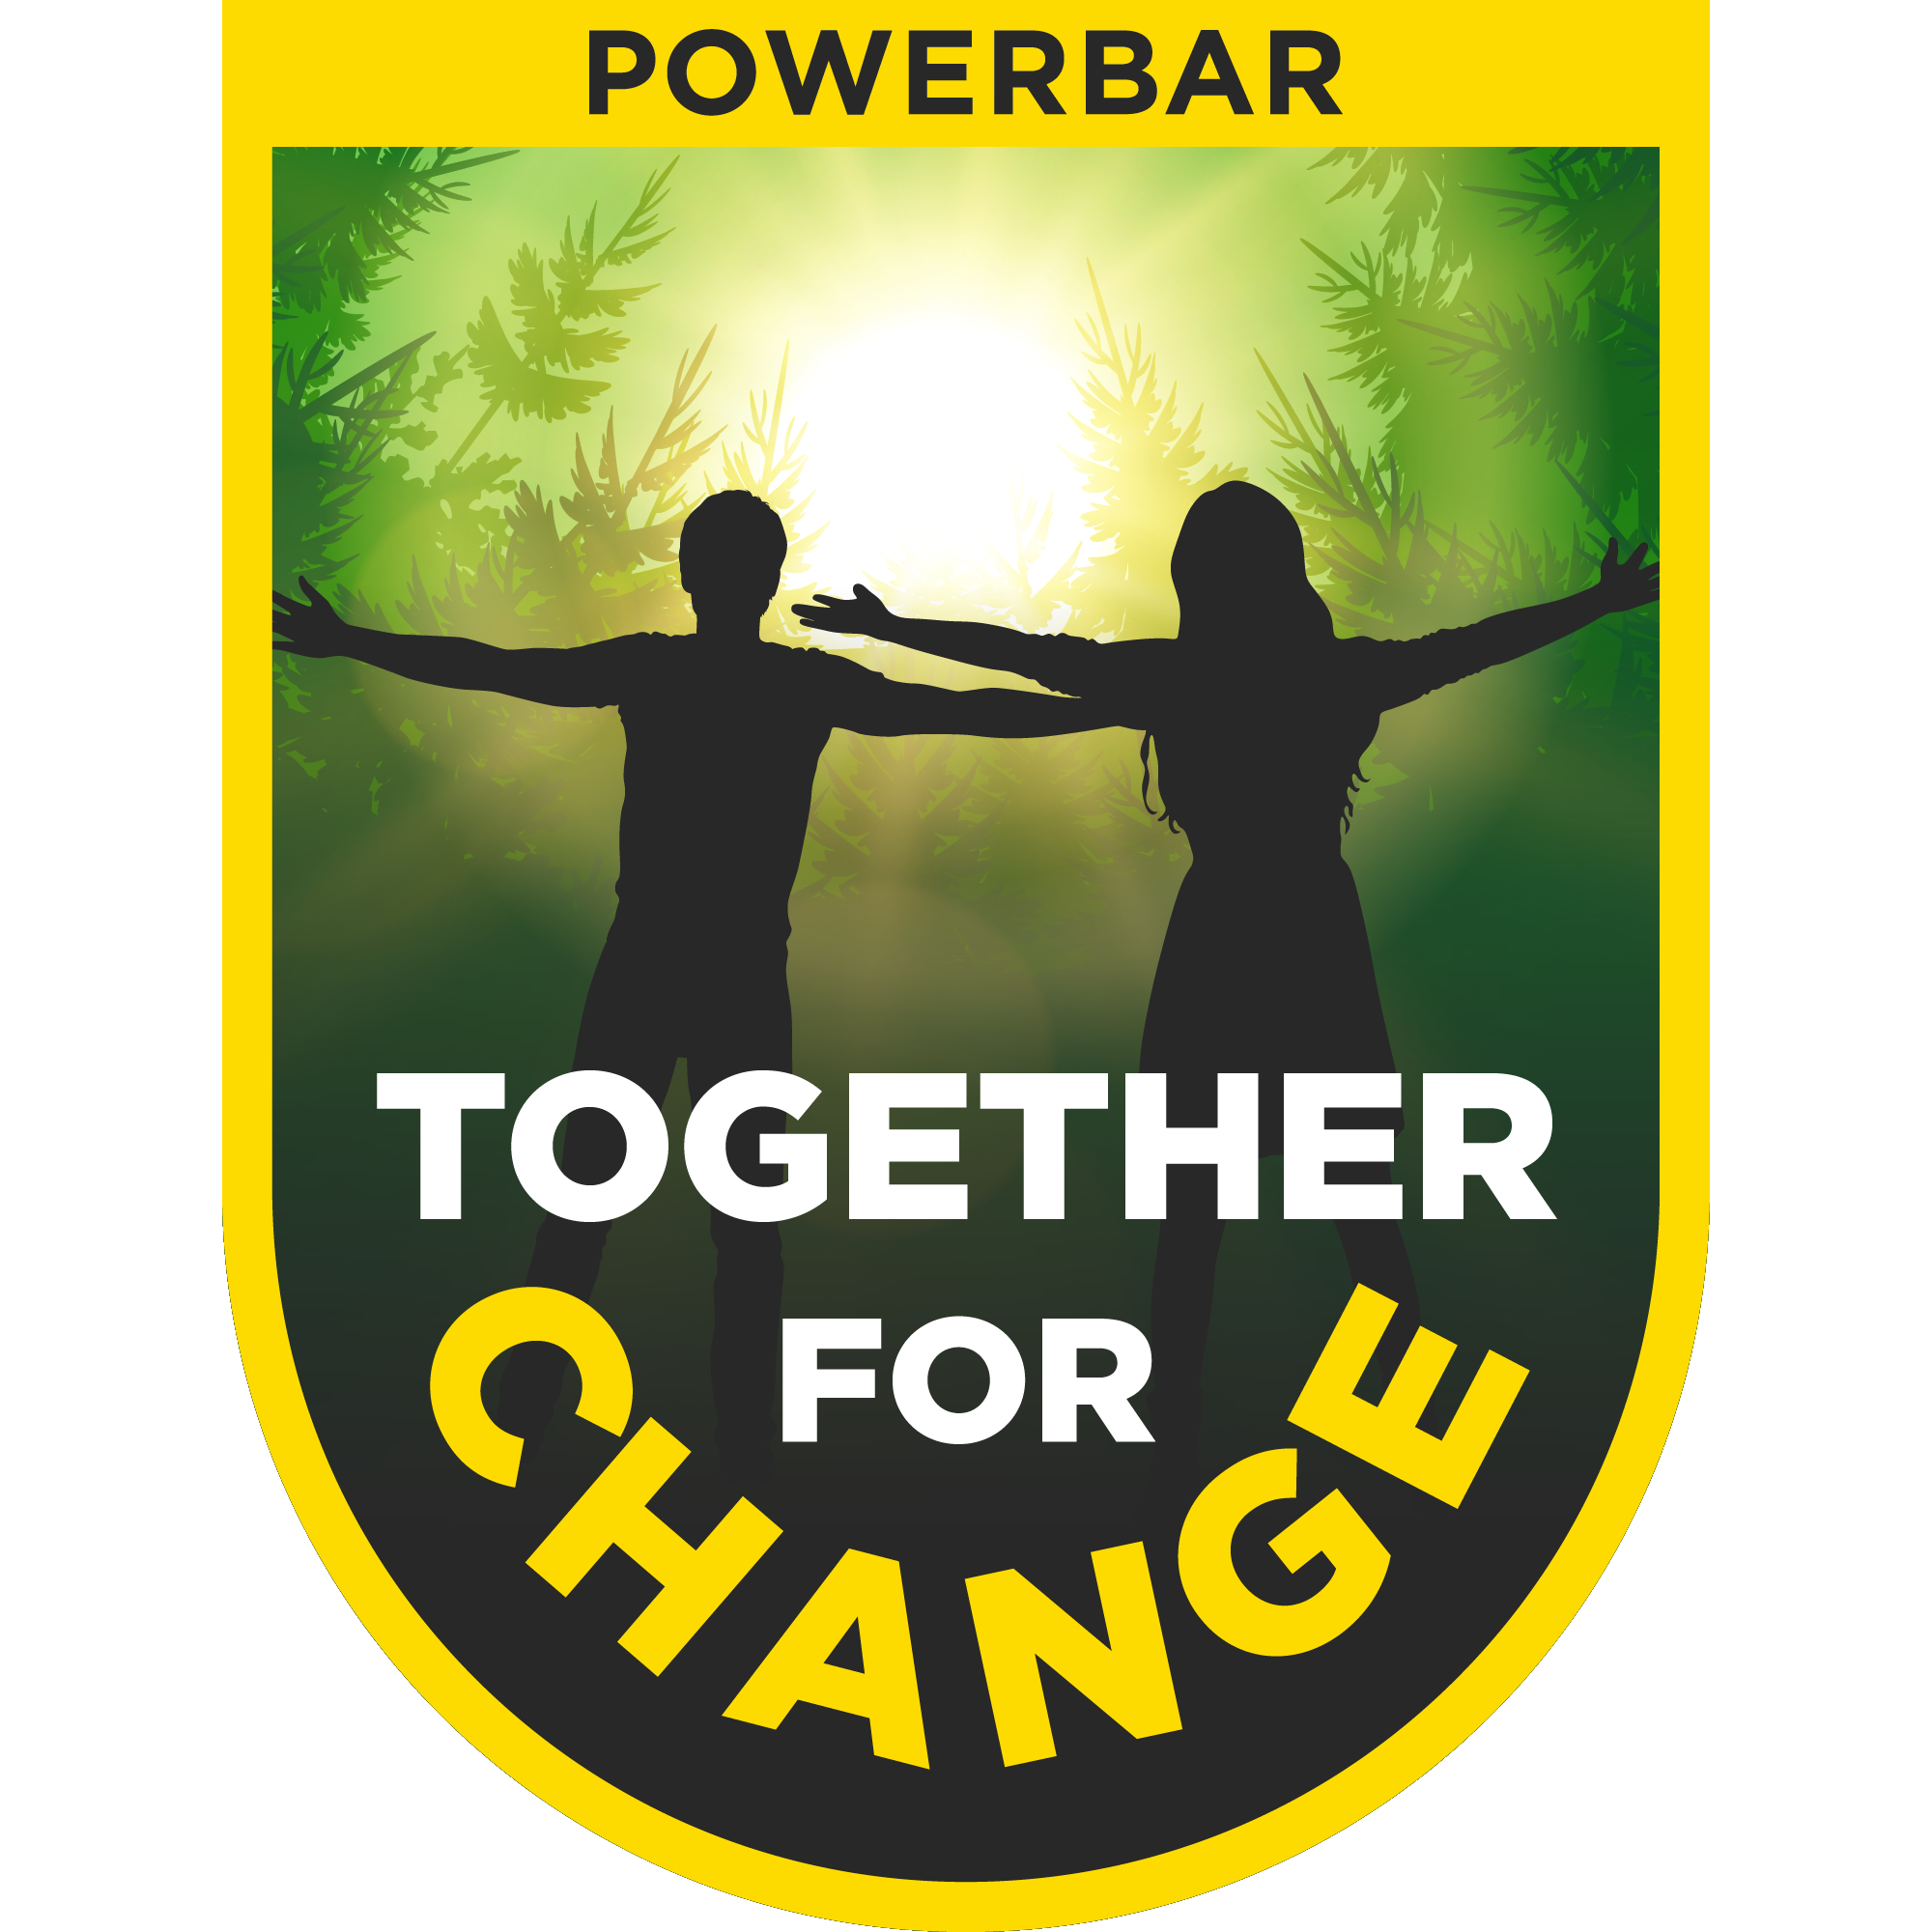 PowerBar – Together for Change